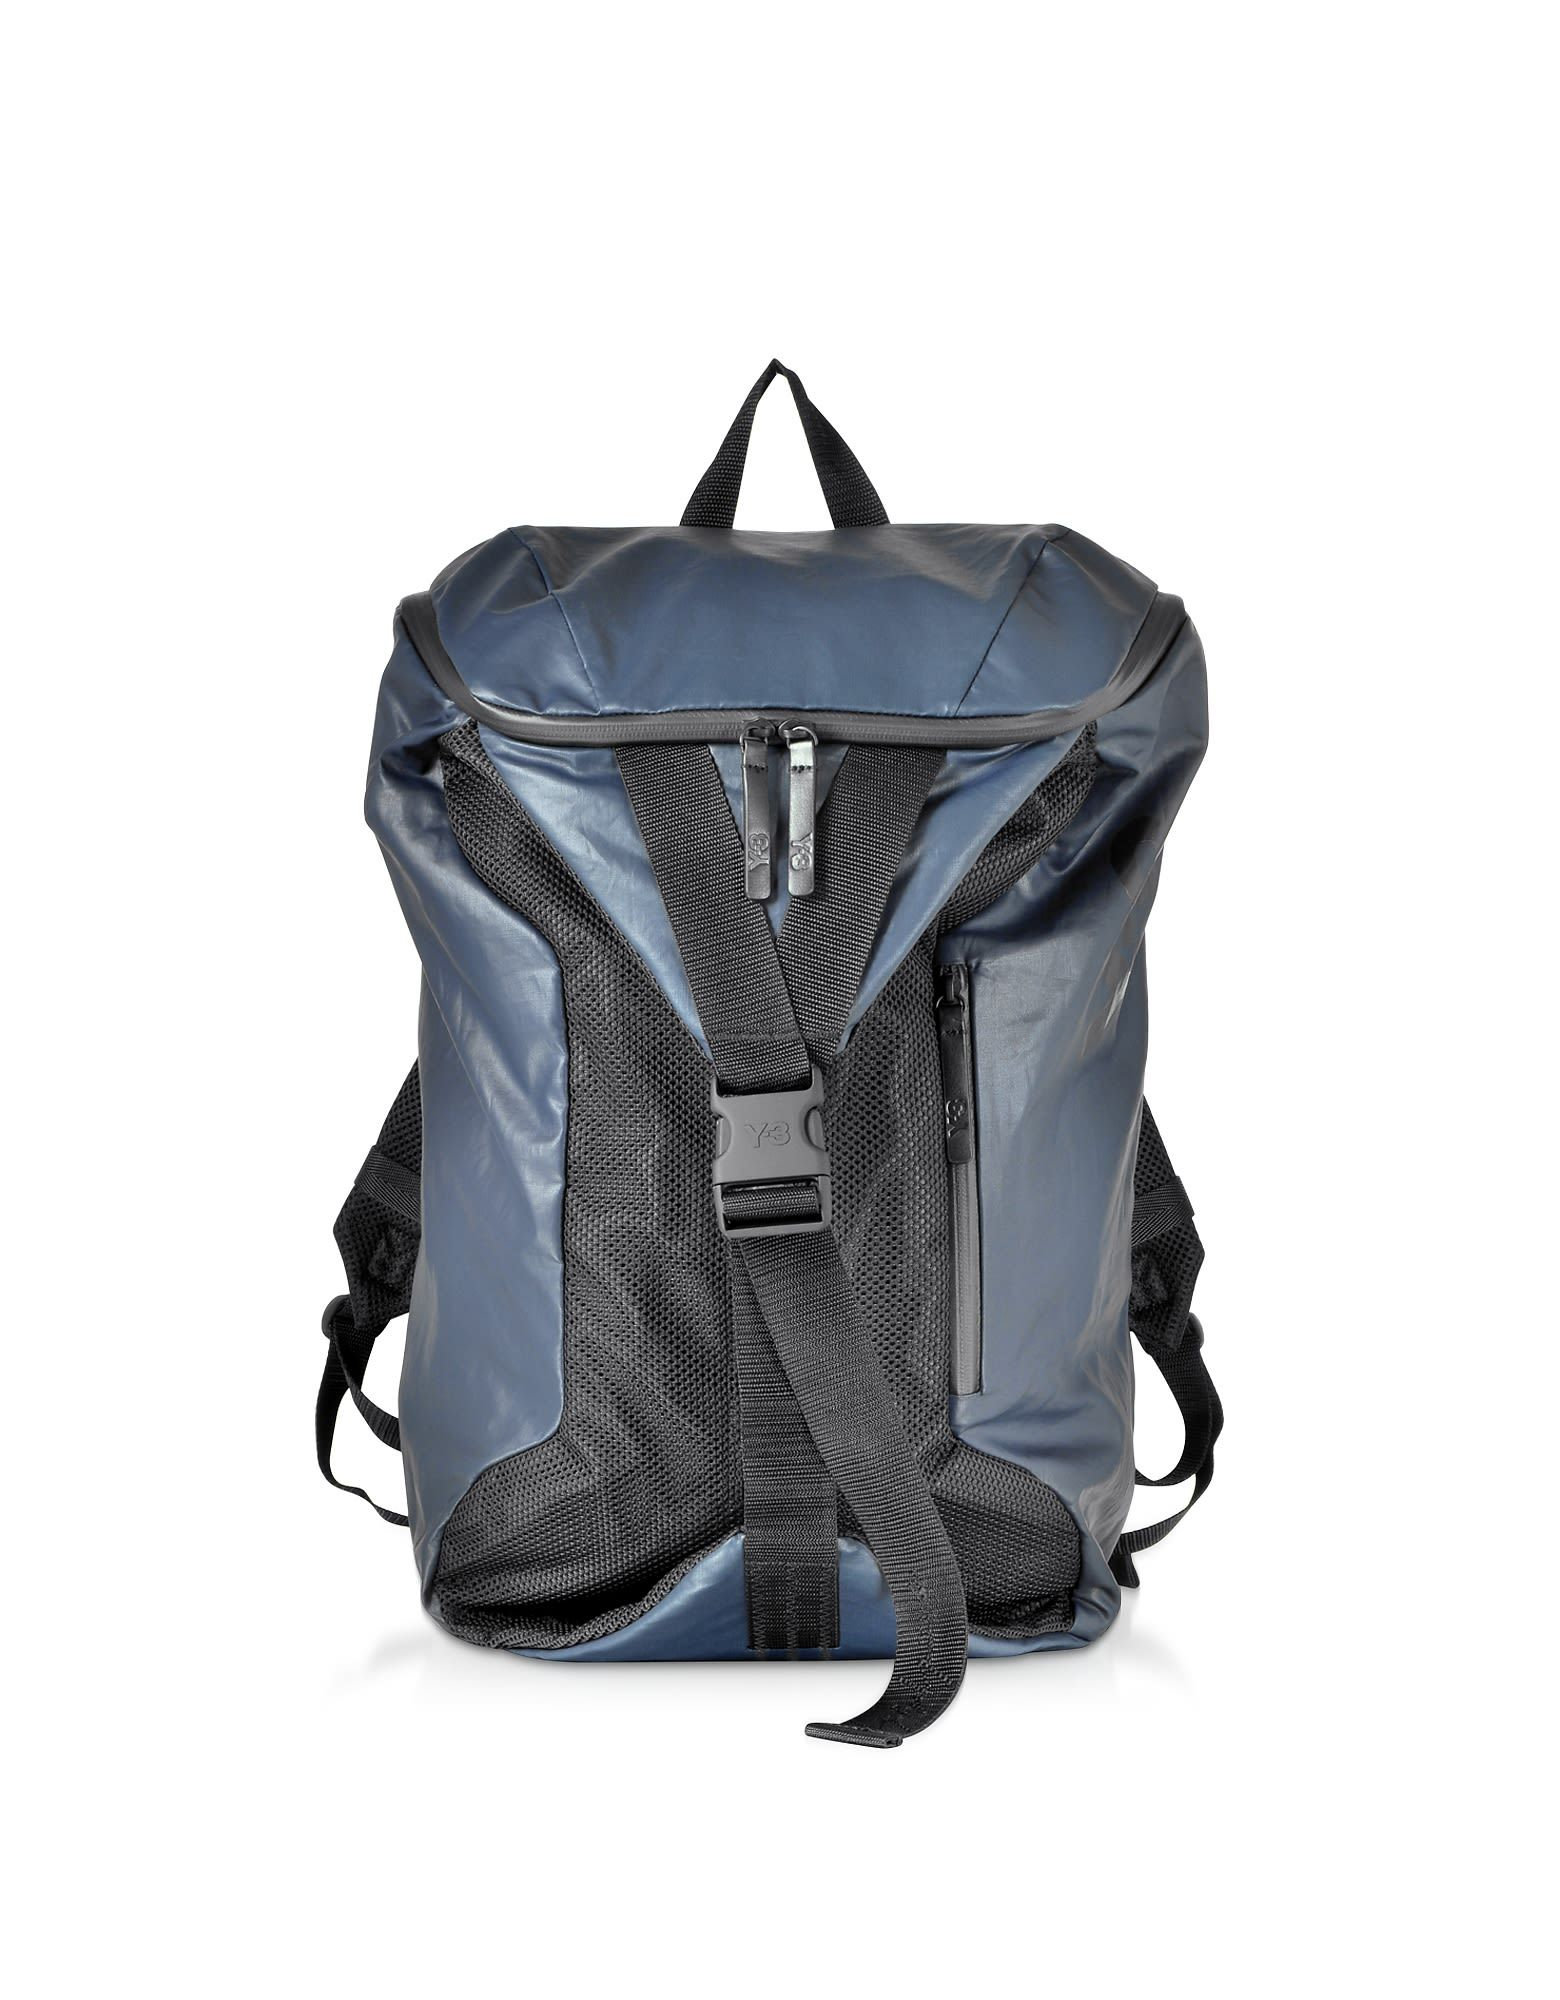 81e3488d605f Y-3 BASE BACKPACK.  y-3  bags  lining  nylon  backpacks